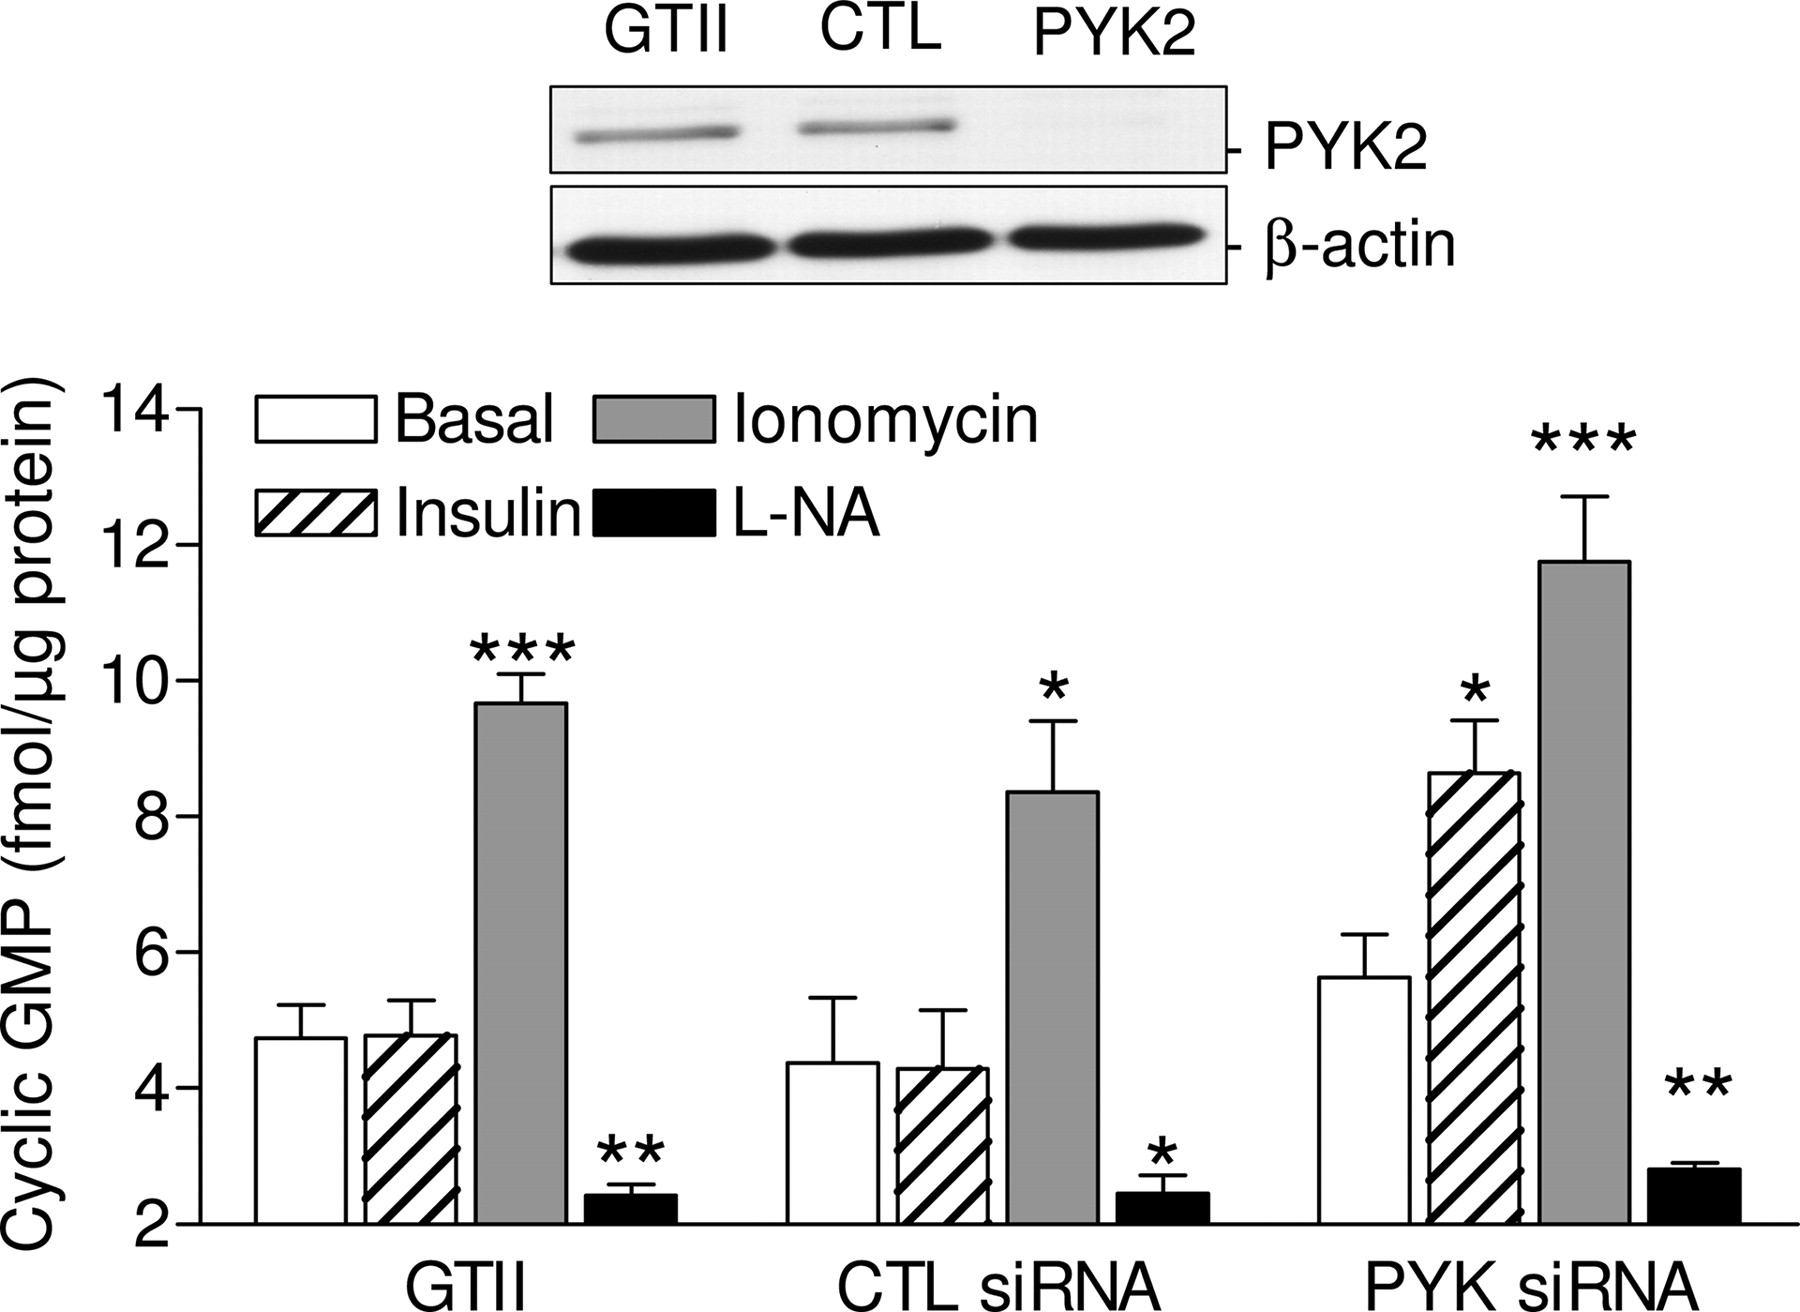 Inhibition of Endothelial Nitric Oxide Synthase Activity by Proline